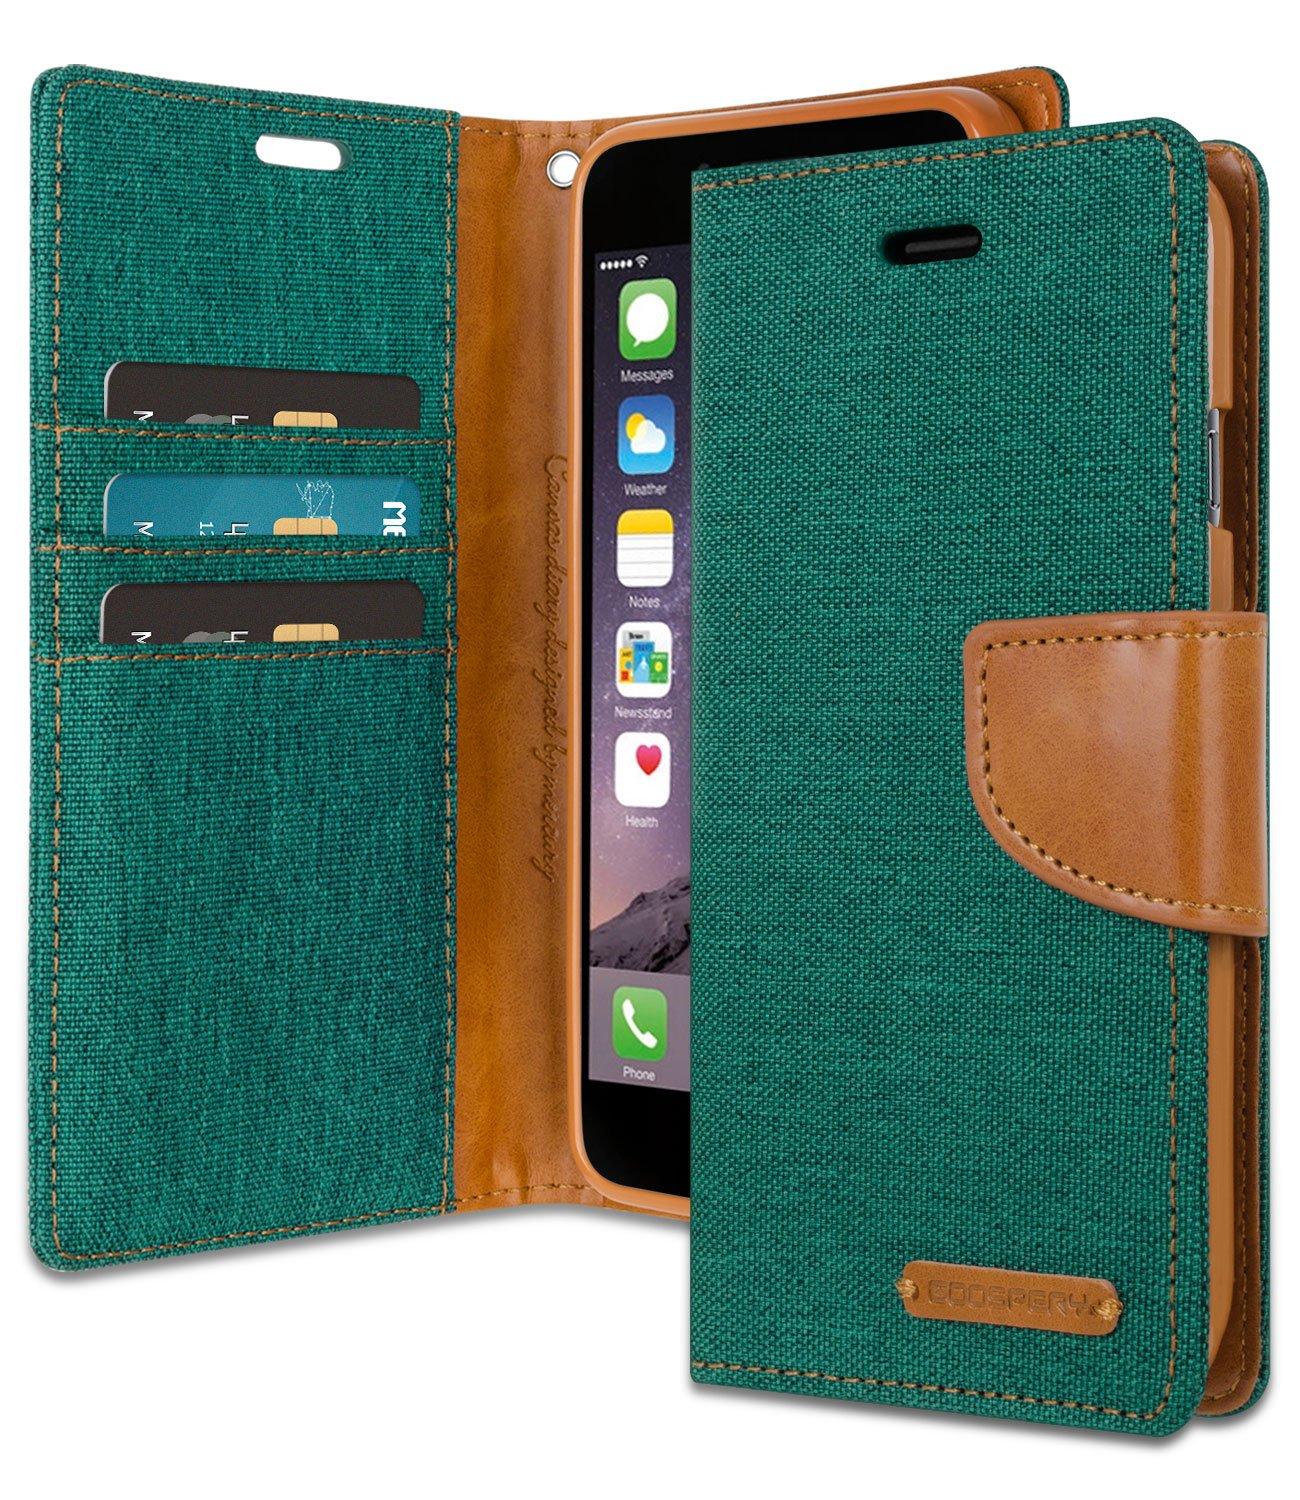 iPhone 6/6S Wallet Case with Free 6 Gifts [Shockproof] GOOSPERY Canvas Diary Ver.Magnetic [Denim Material] Card Holder with Kickstand Flip Cover for Apple iPhone6S 6 - Green, IP6-CAN/GF-GRN by GOOSPERY